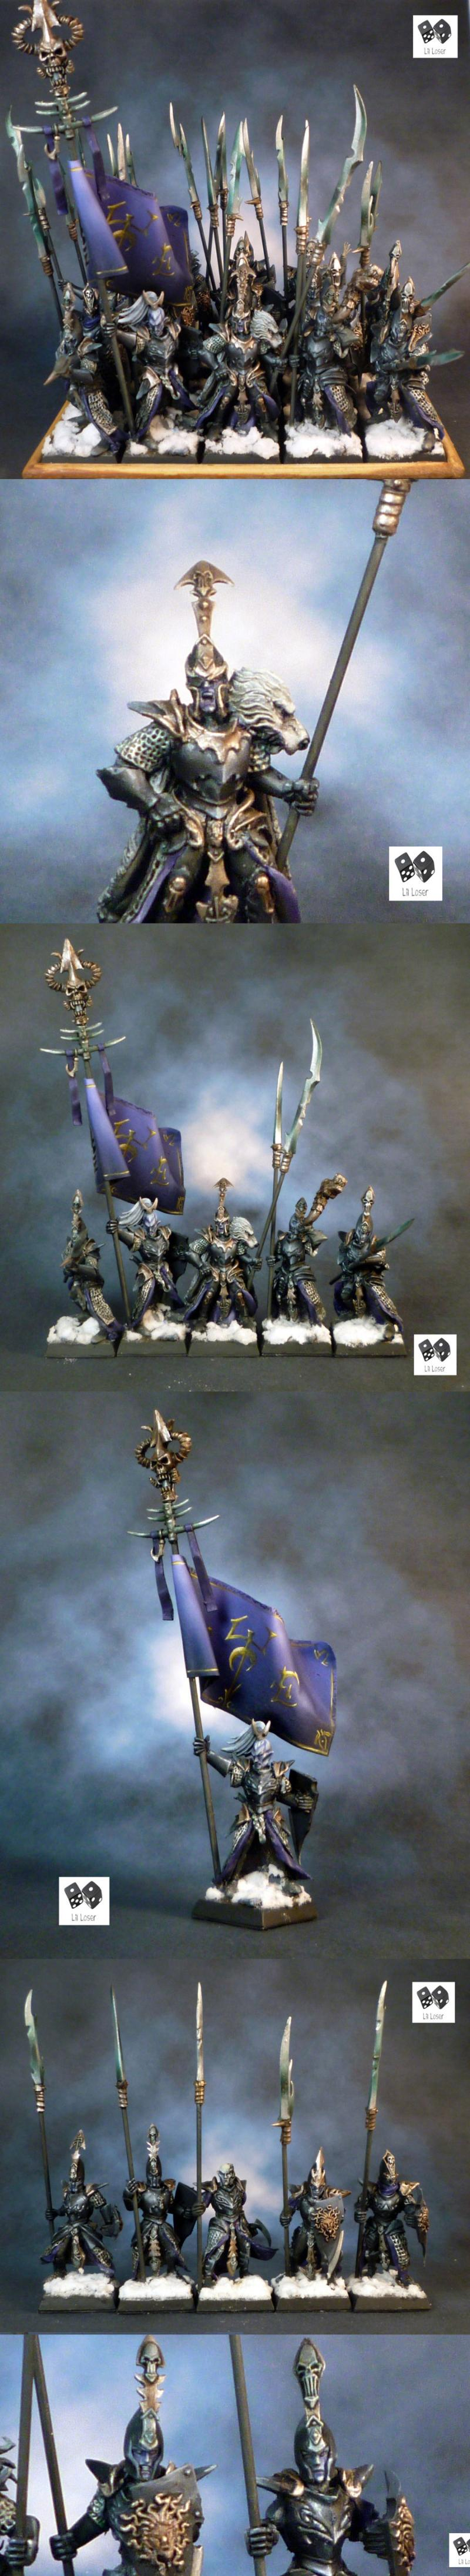 Conversion, Dark Elves, Druchii, Naggarond, Naggaroth, Non-Metallic Metal, Warriors